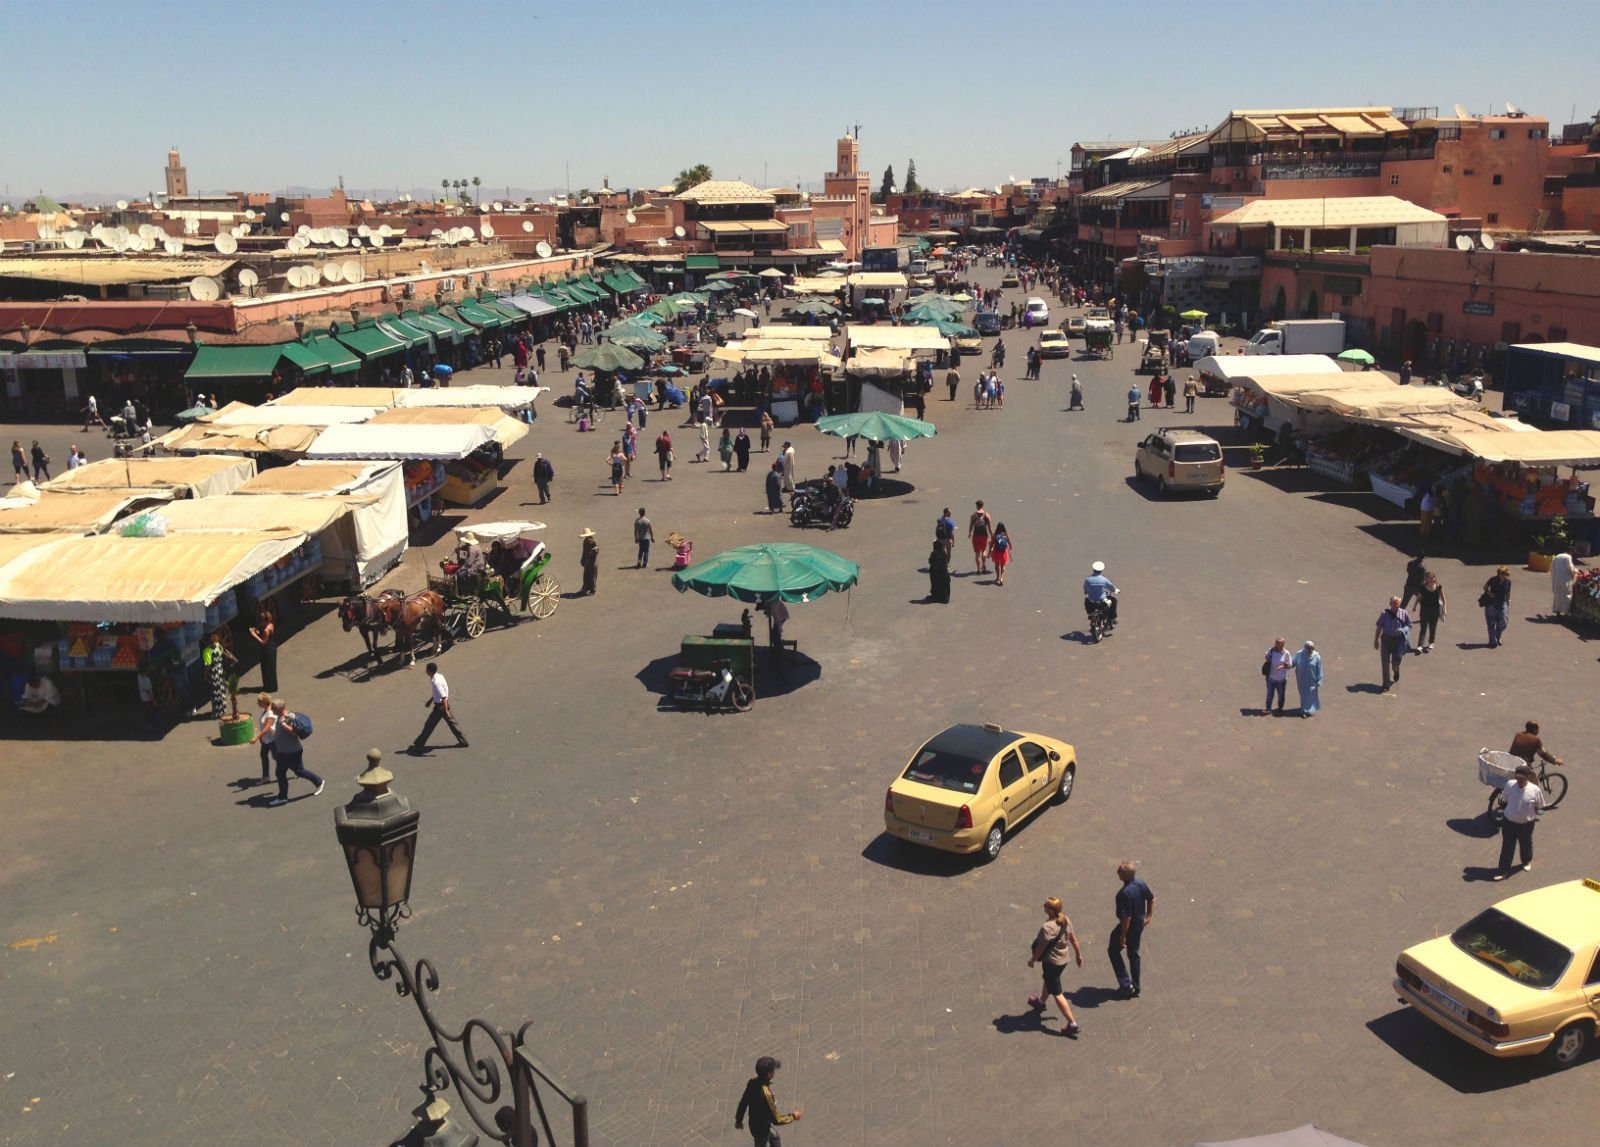 The main square in Marrakech, Morocco is one of the most popular tourist destinations in Morocco